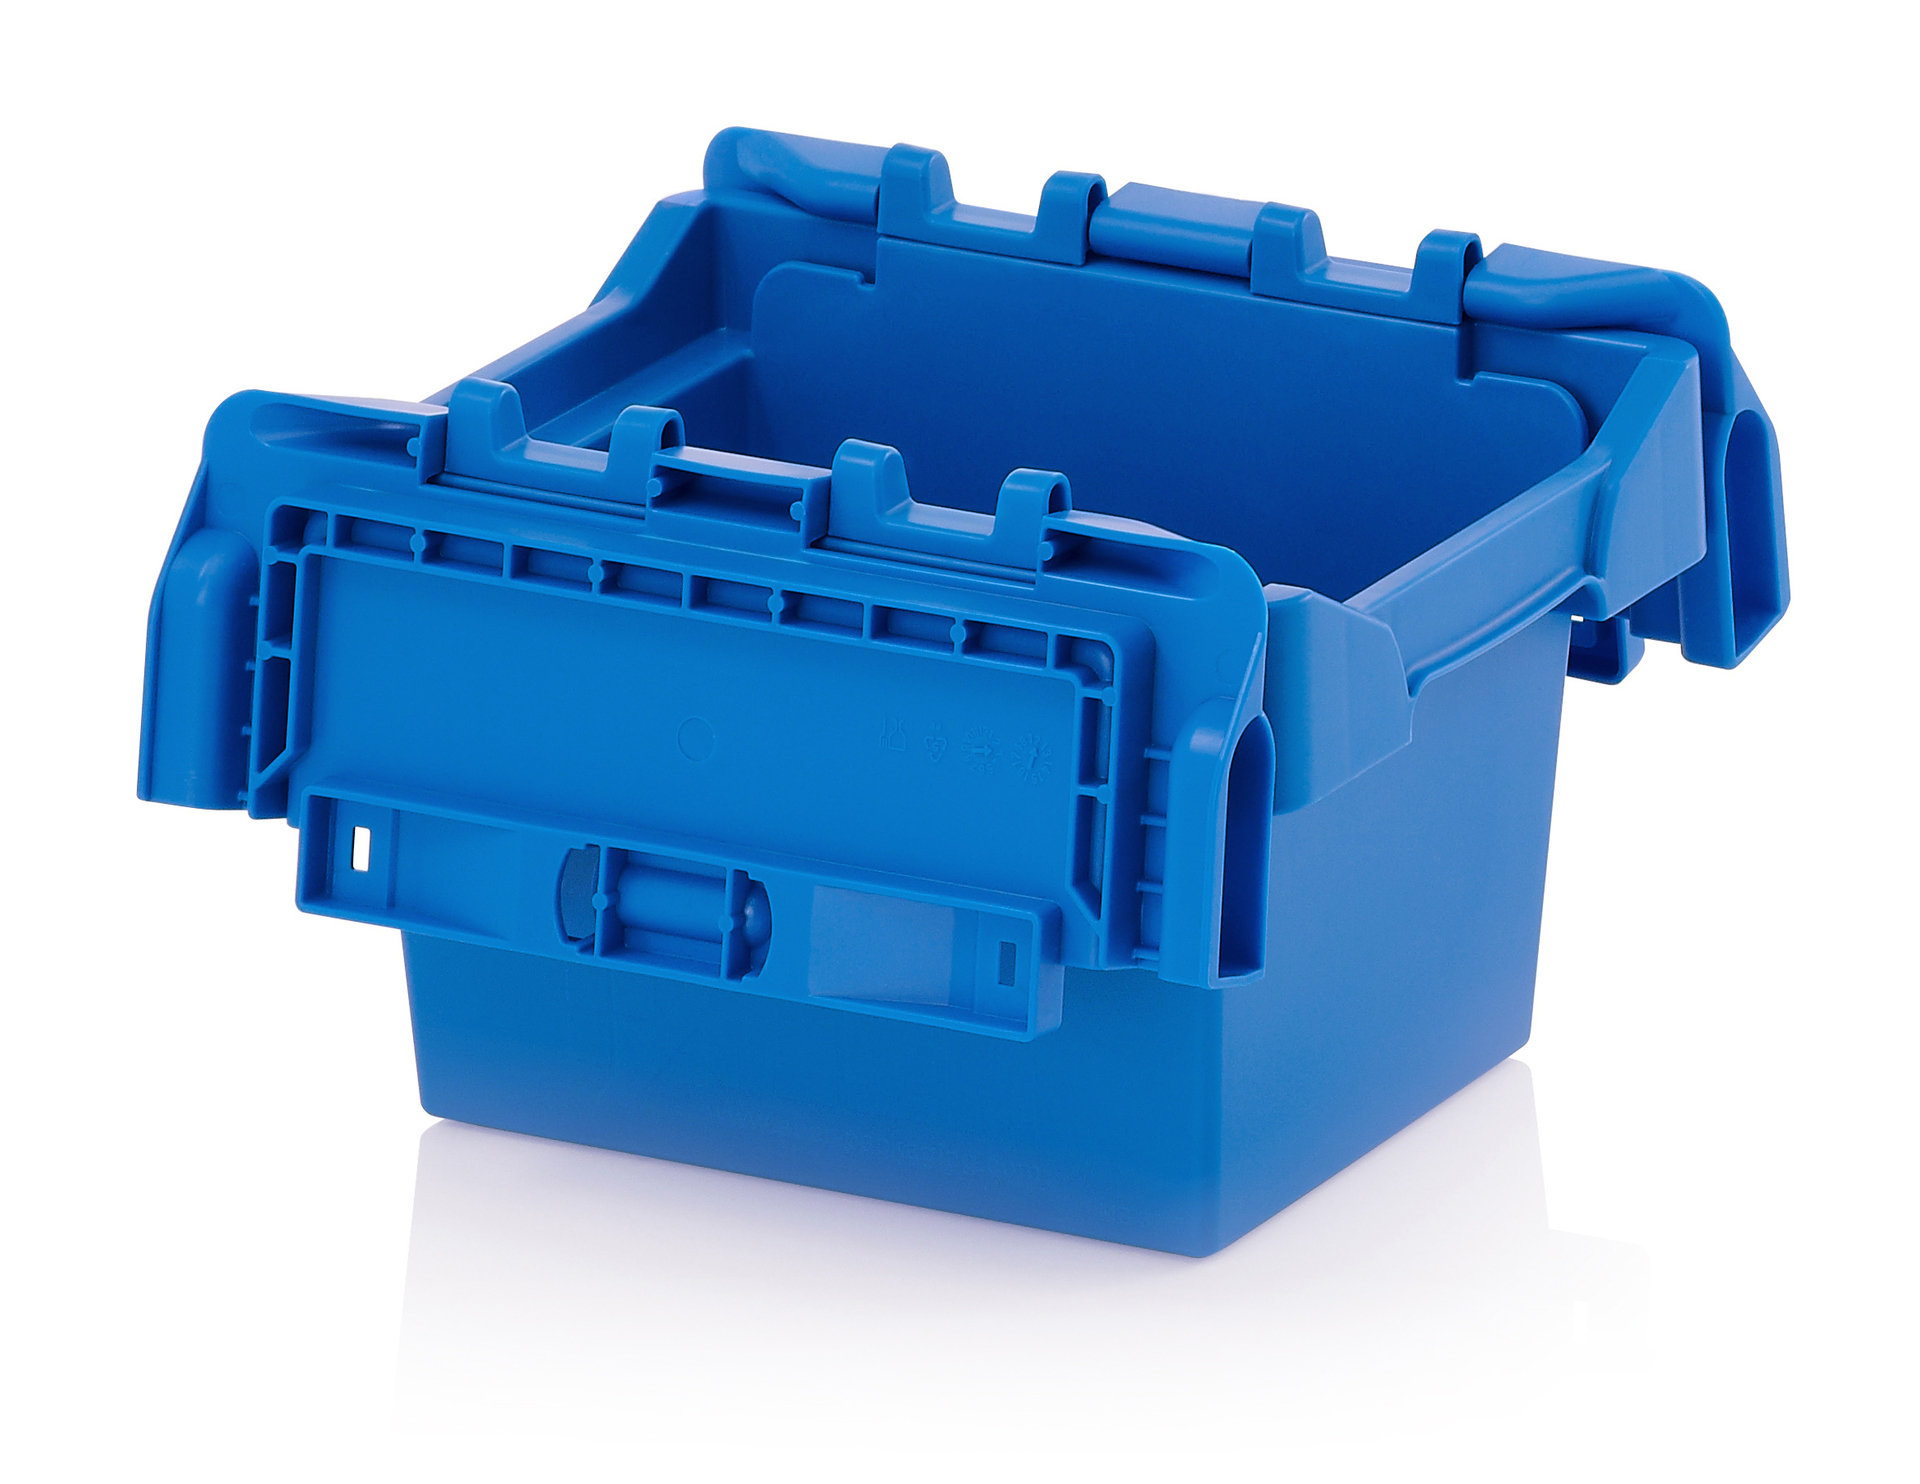 RC3170L_3 Reusable Containers - Plastic Mouldings Northern